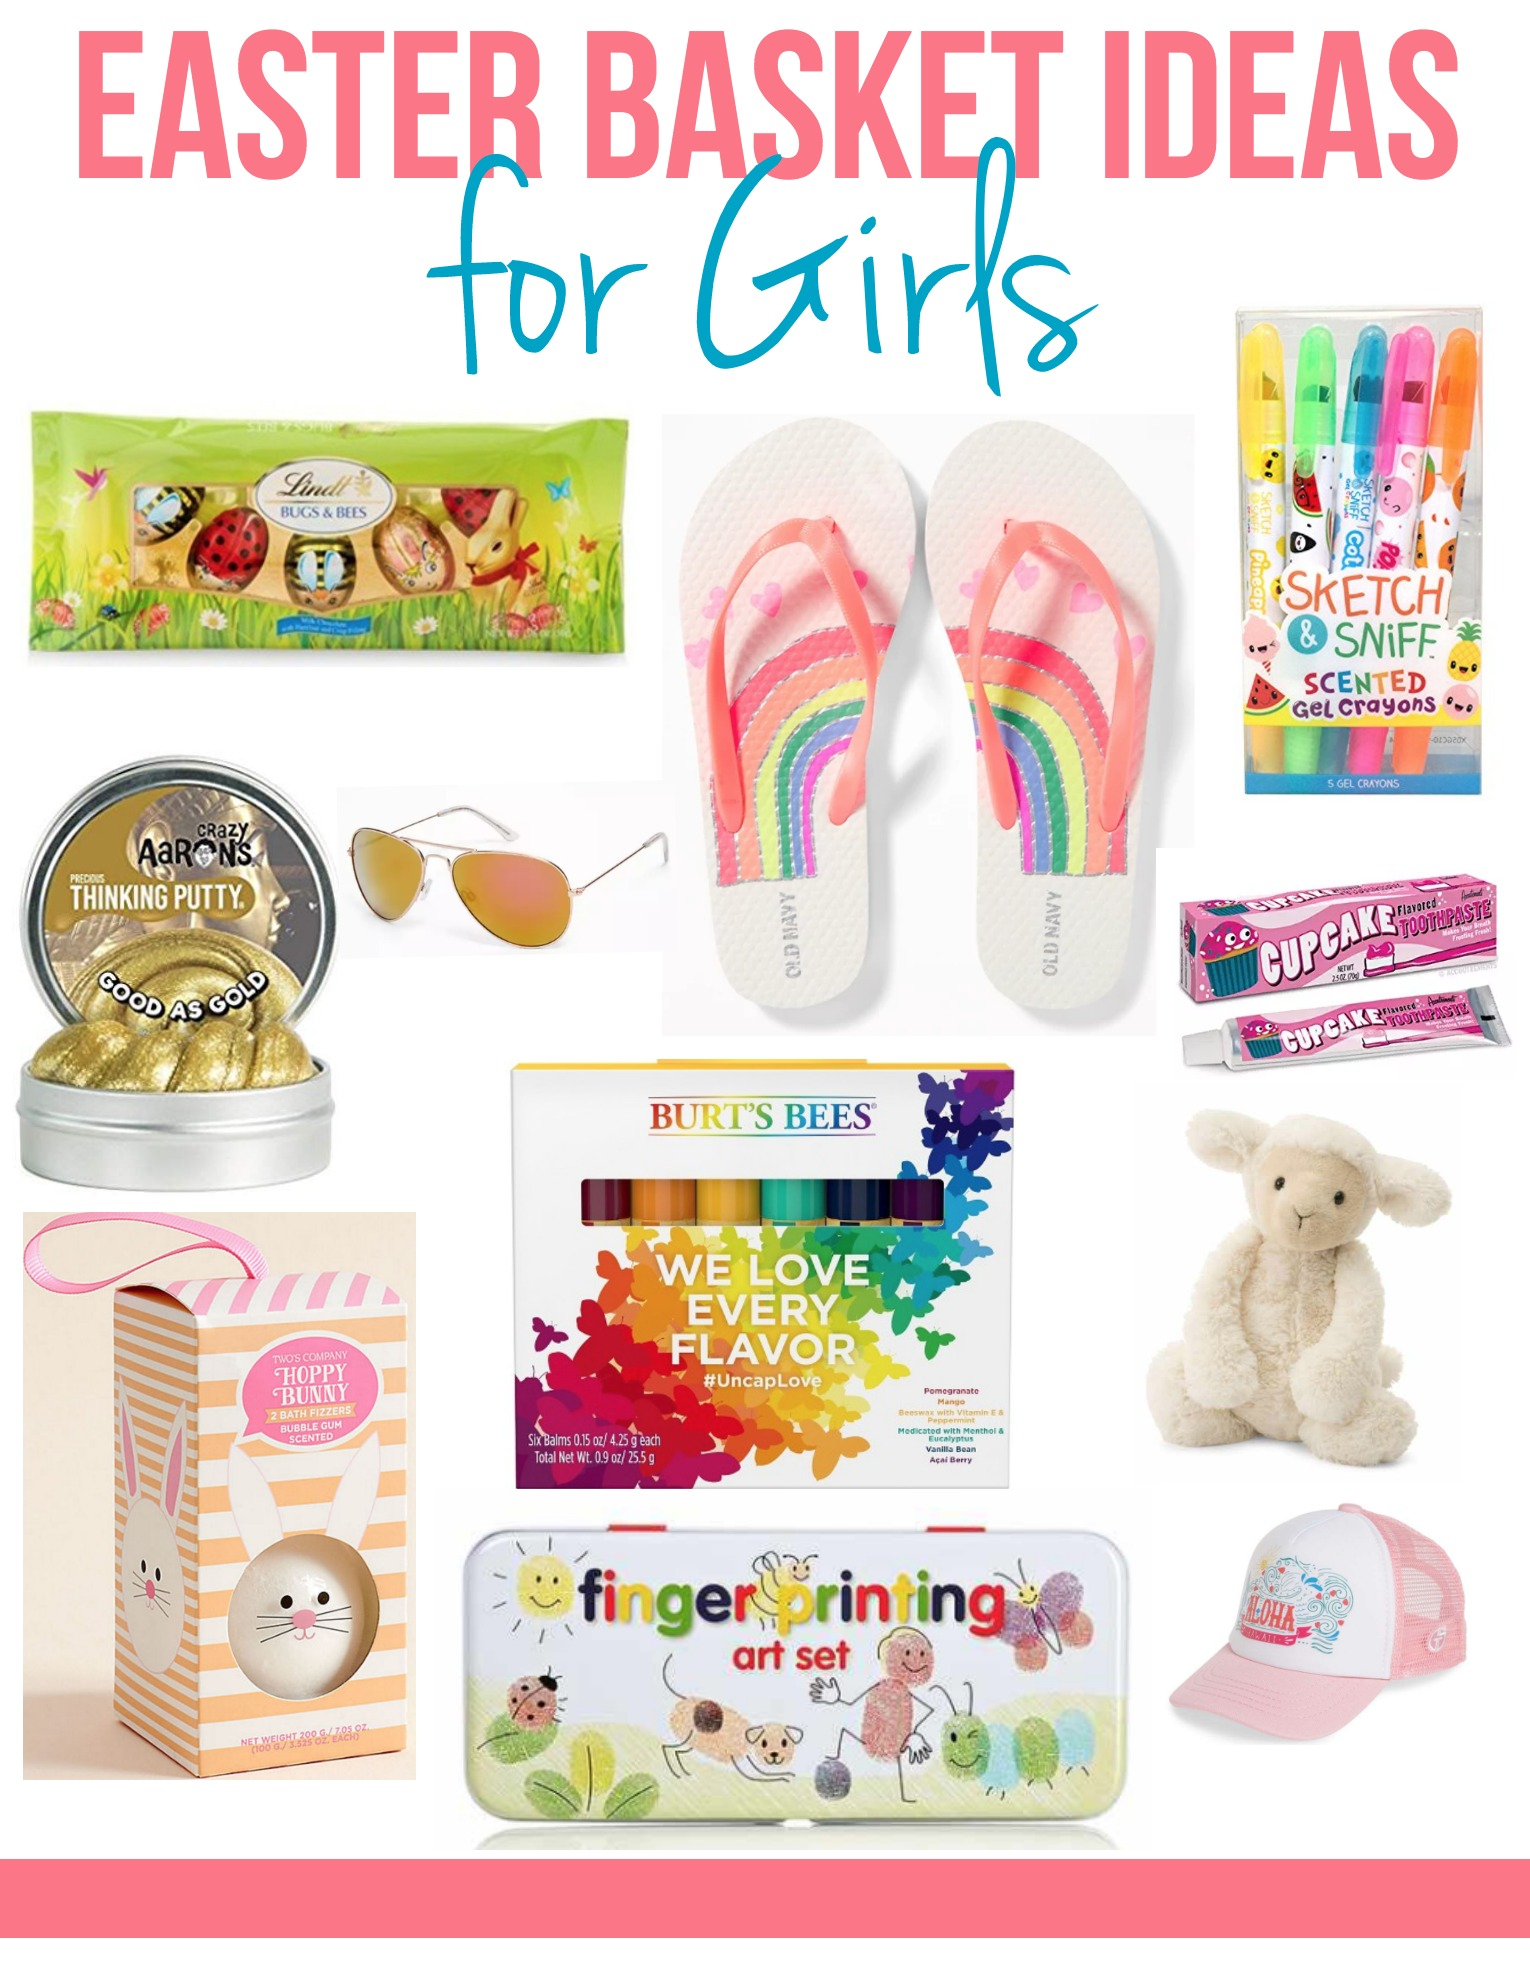 Easter basket ideas for girls my frugal adventures easter basket ideas for girls on myfrugaladventures cute little gift ideas for girls negle Images